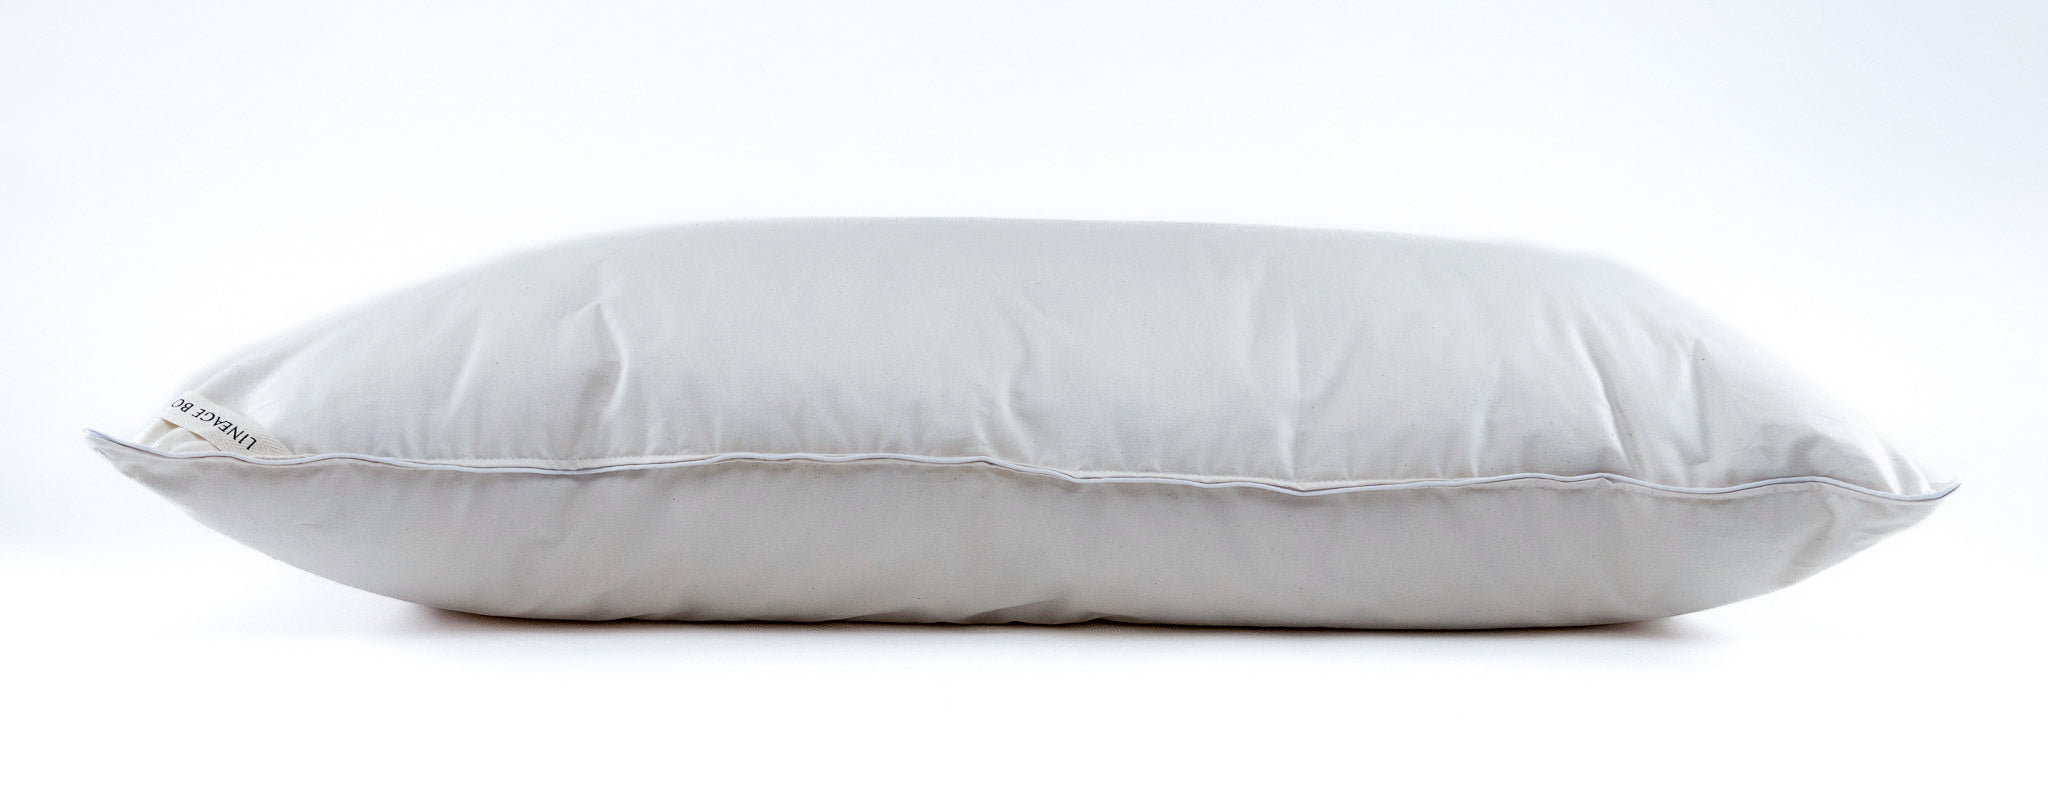 Down Bedding Pillow: King size, organic cotton, recycled 100% Hungarian goose down P-1K